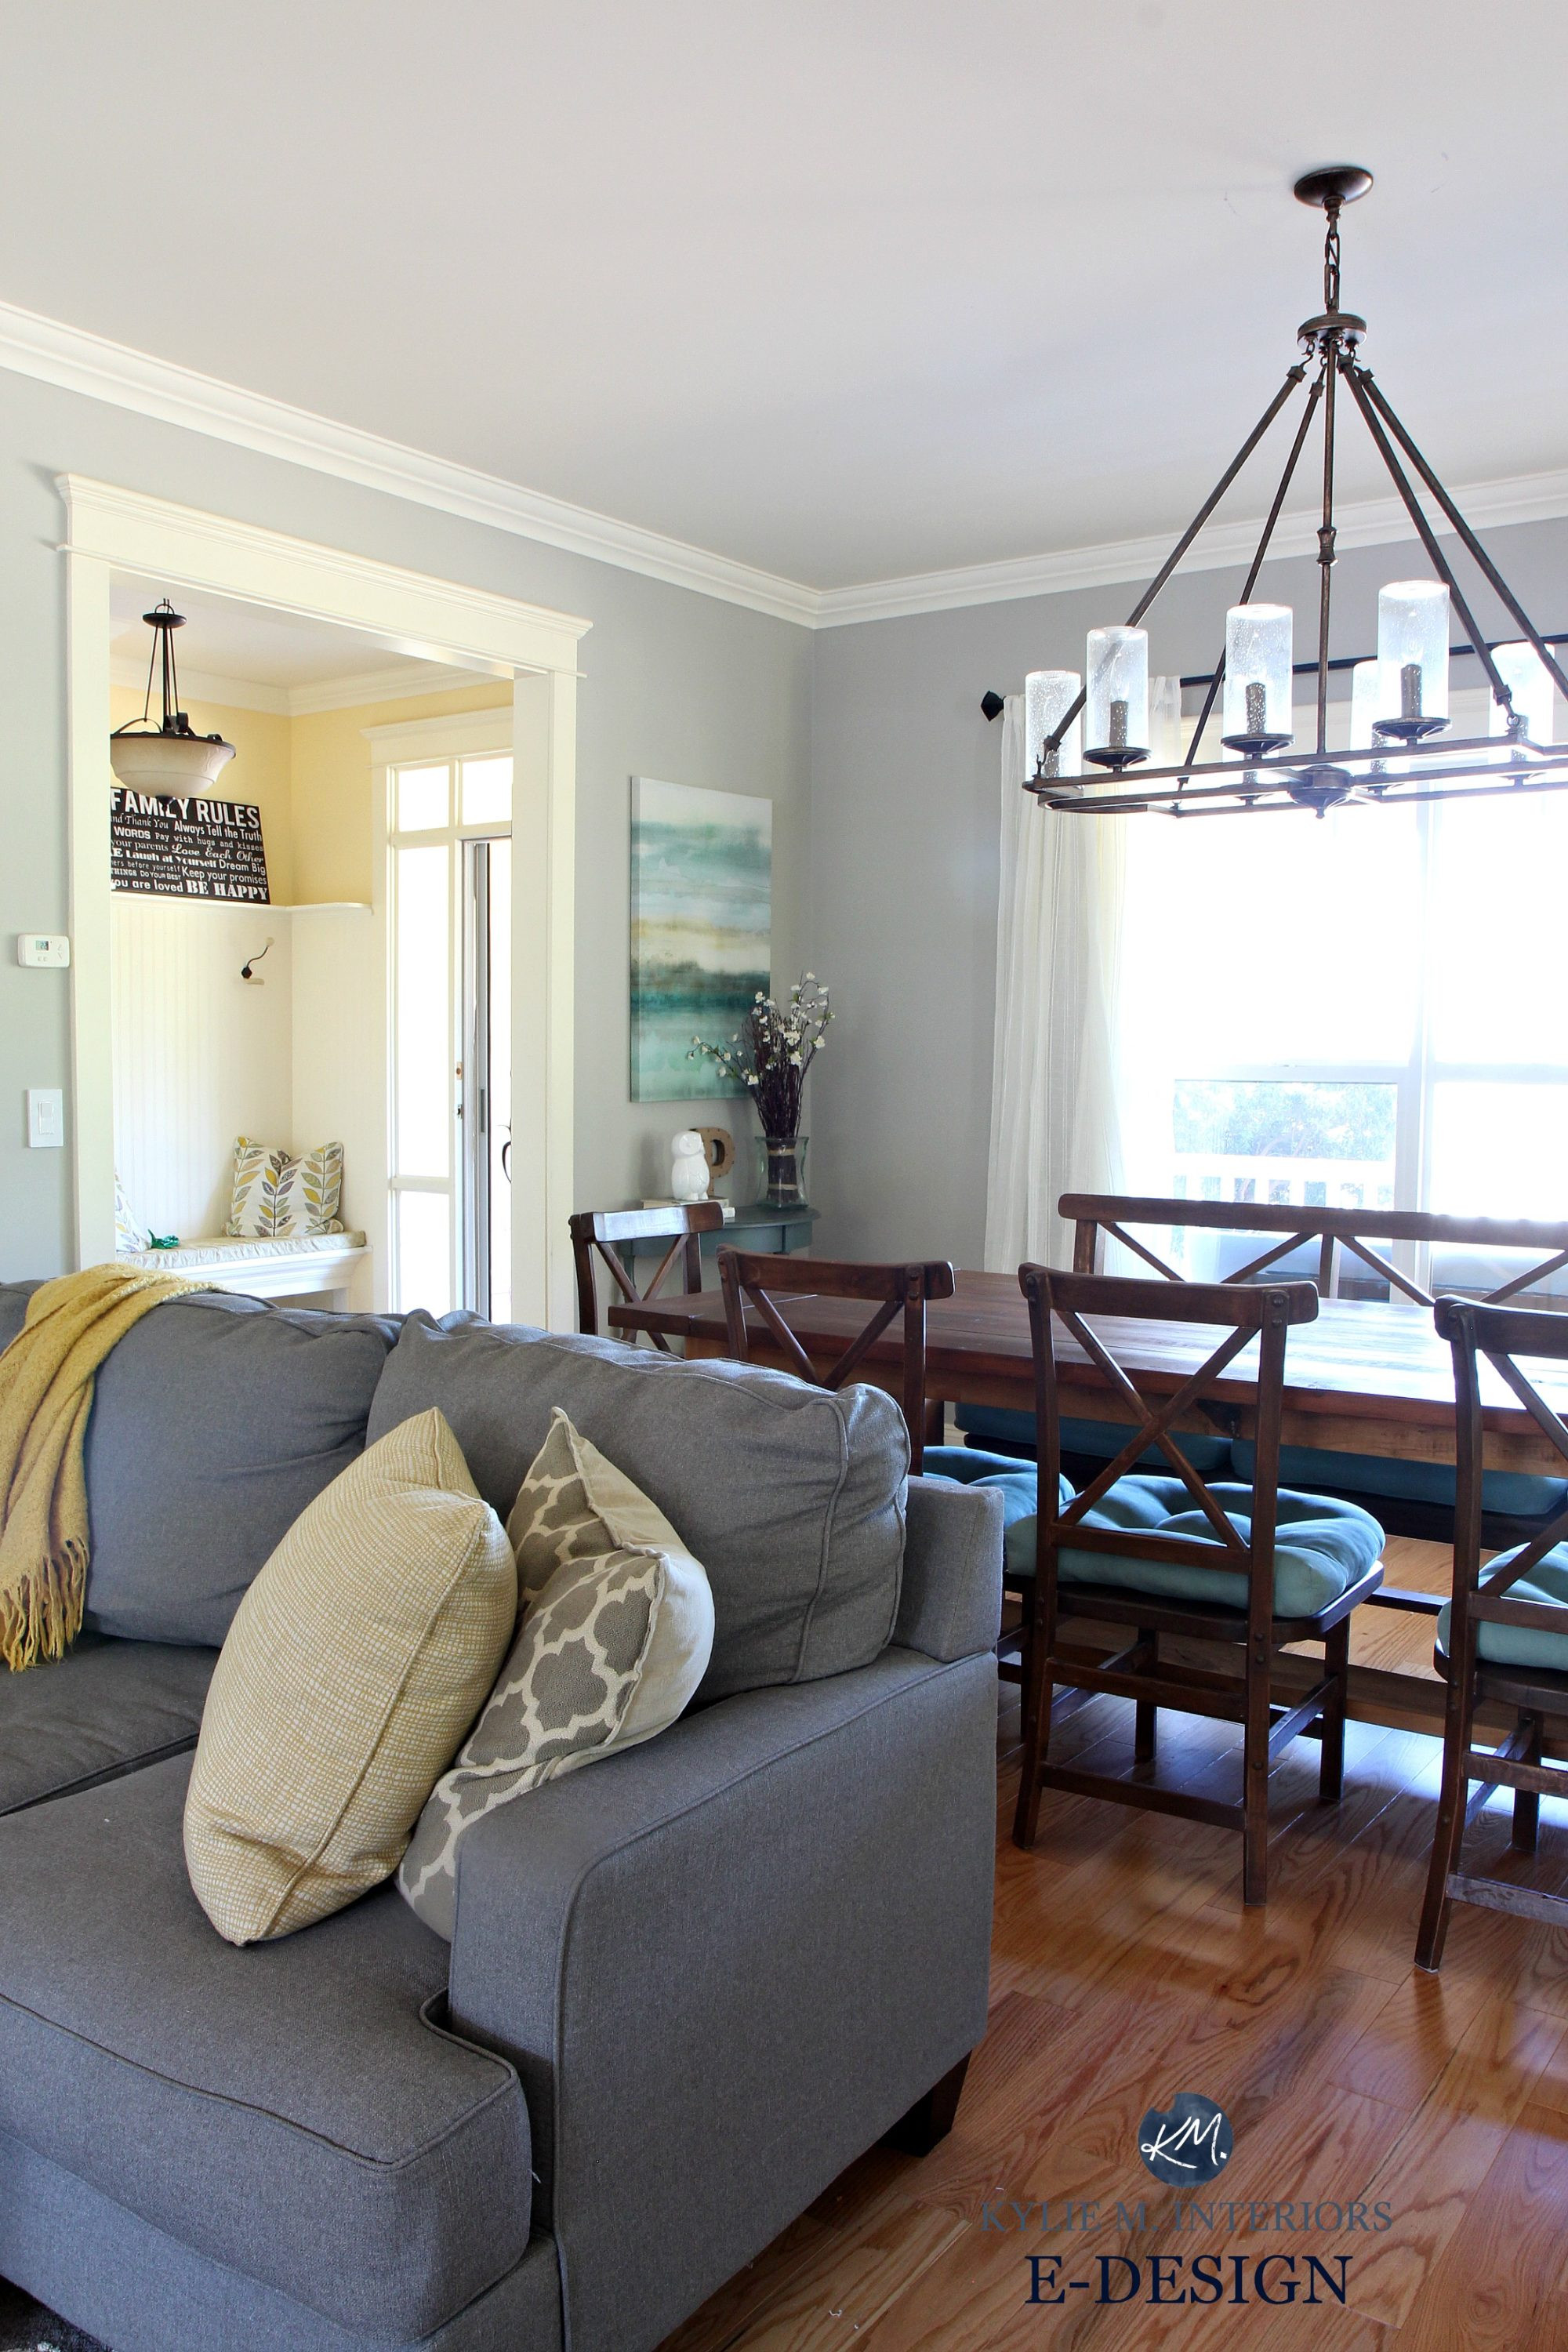 Best ideas about Revere Pewter Living Room . Save or Pin Benjamin Moore Revere Pewter in living room with gray Now.